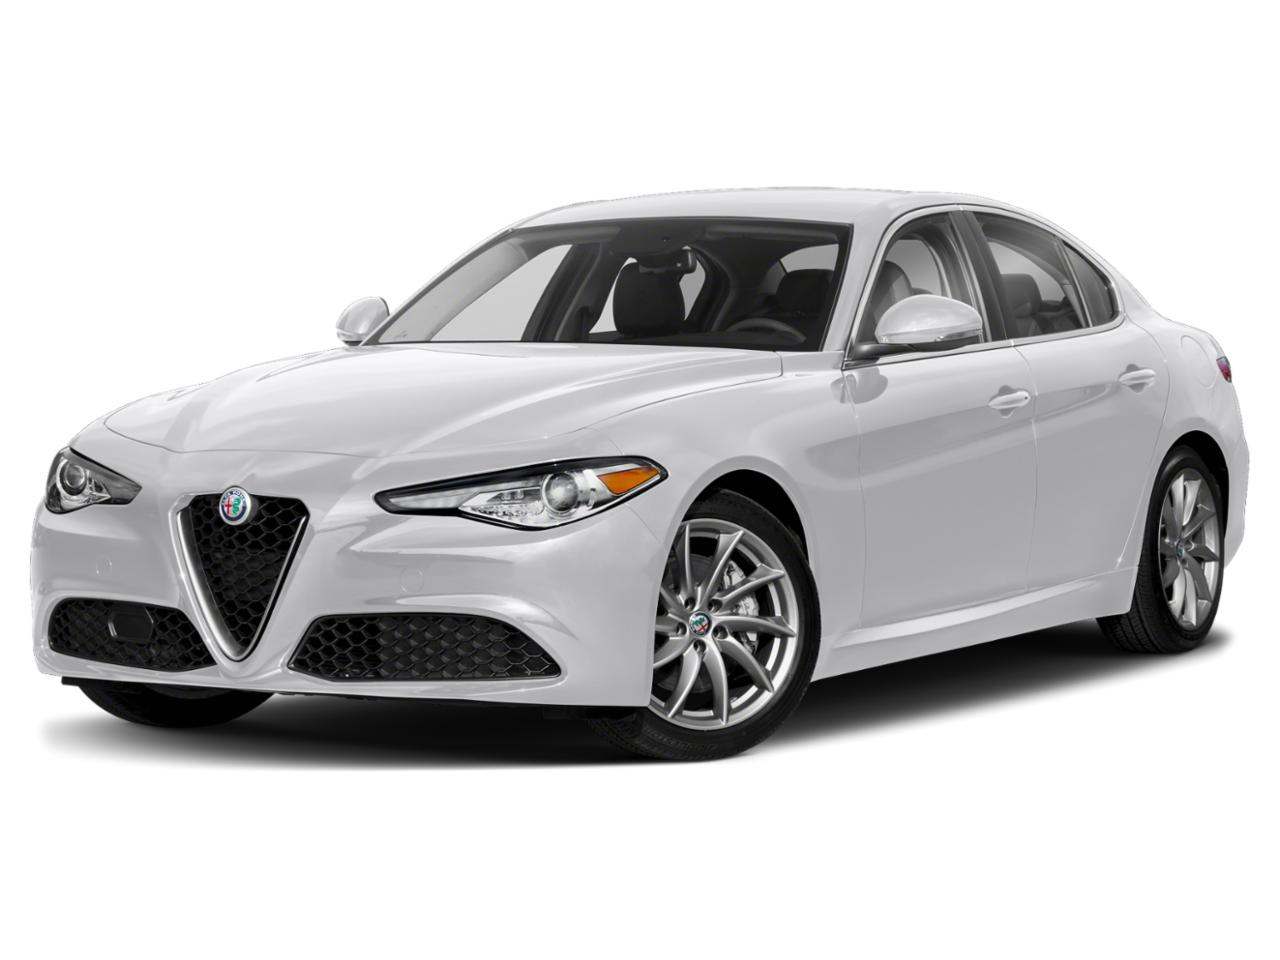 2018 Alfa Romeo Giulia Vehicle Photo in Allentown, PA 18103